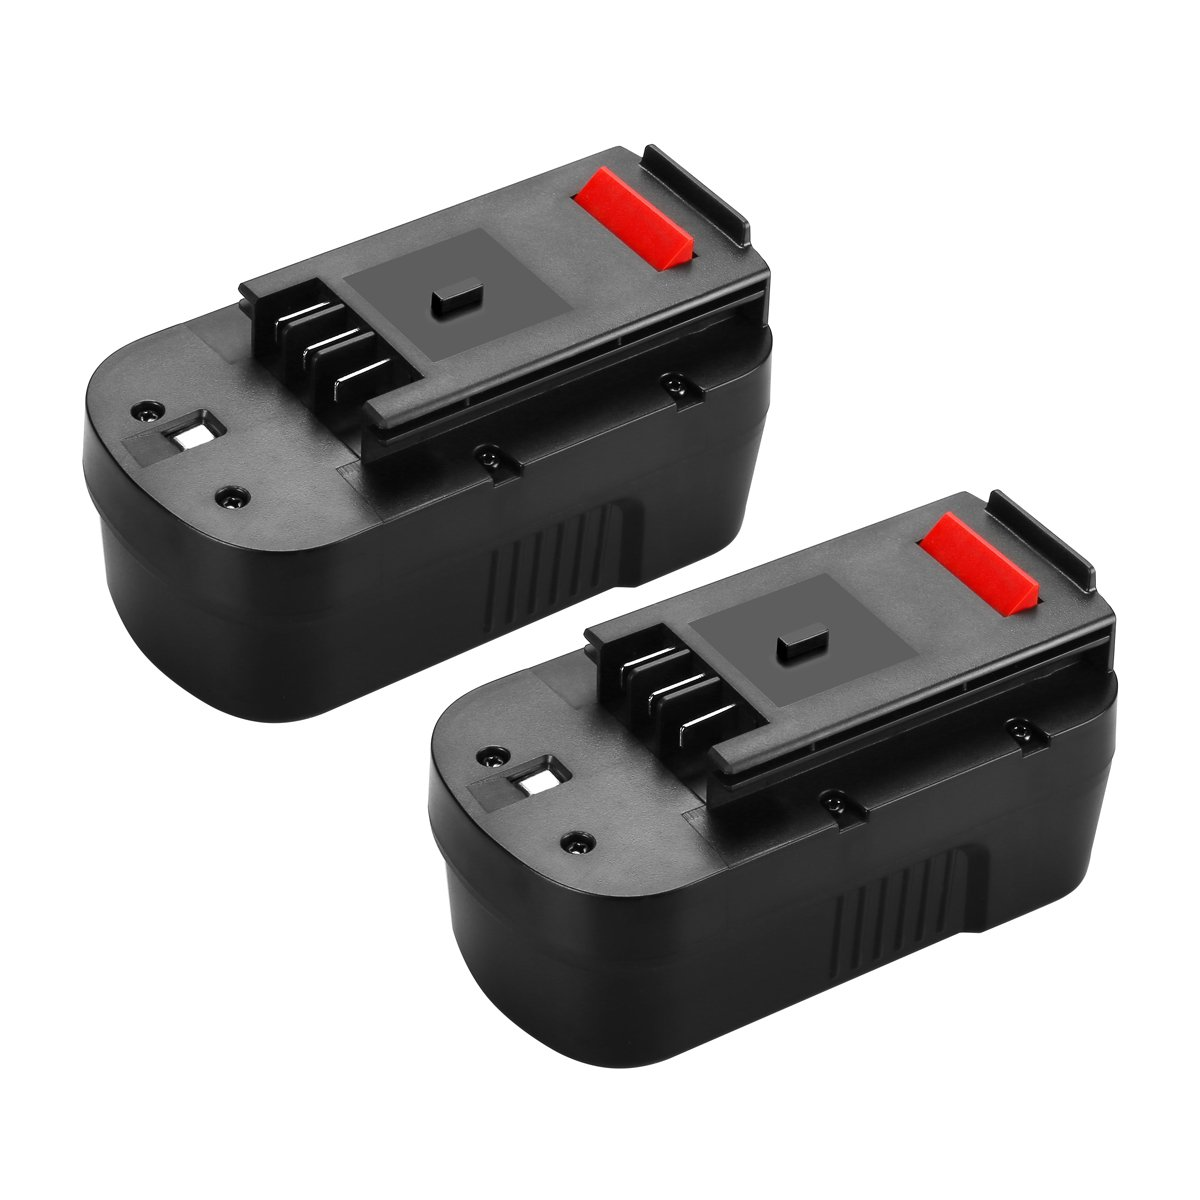 Powilling 2Pack 18V 3500mAh Replacement Battery for Black & Decker HPB18 HPB18-OPE 244760-00 A1718 A18 A18E Firestorm FS180BX FS18BX FS18FL FSB18